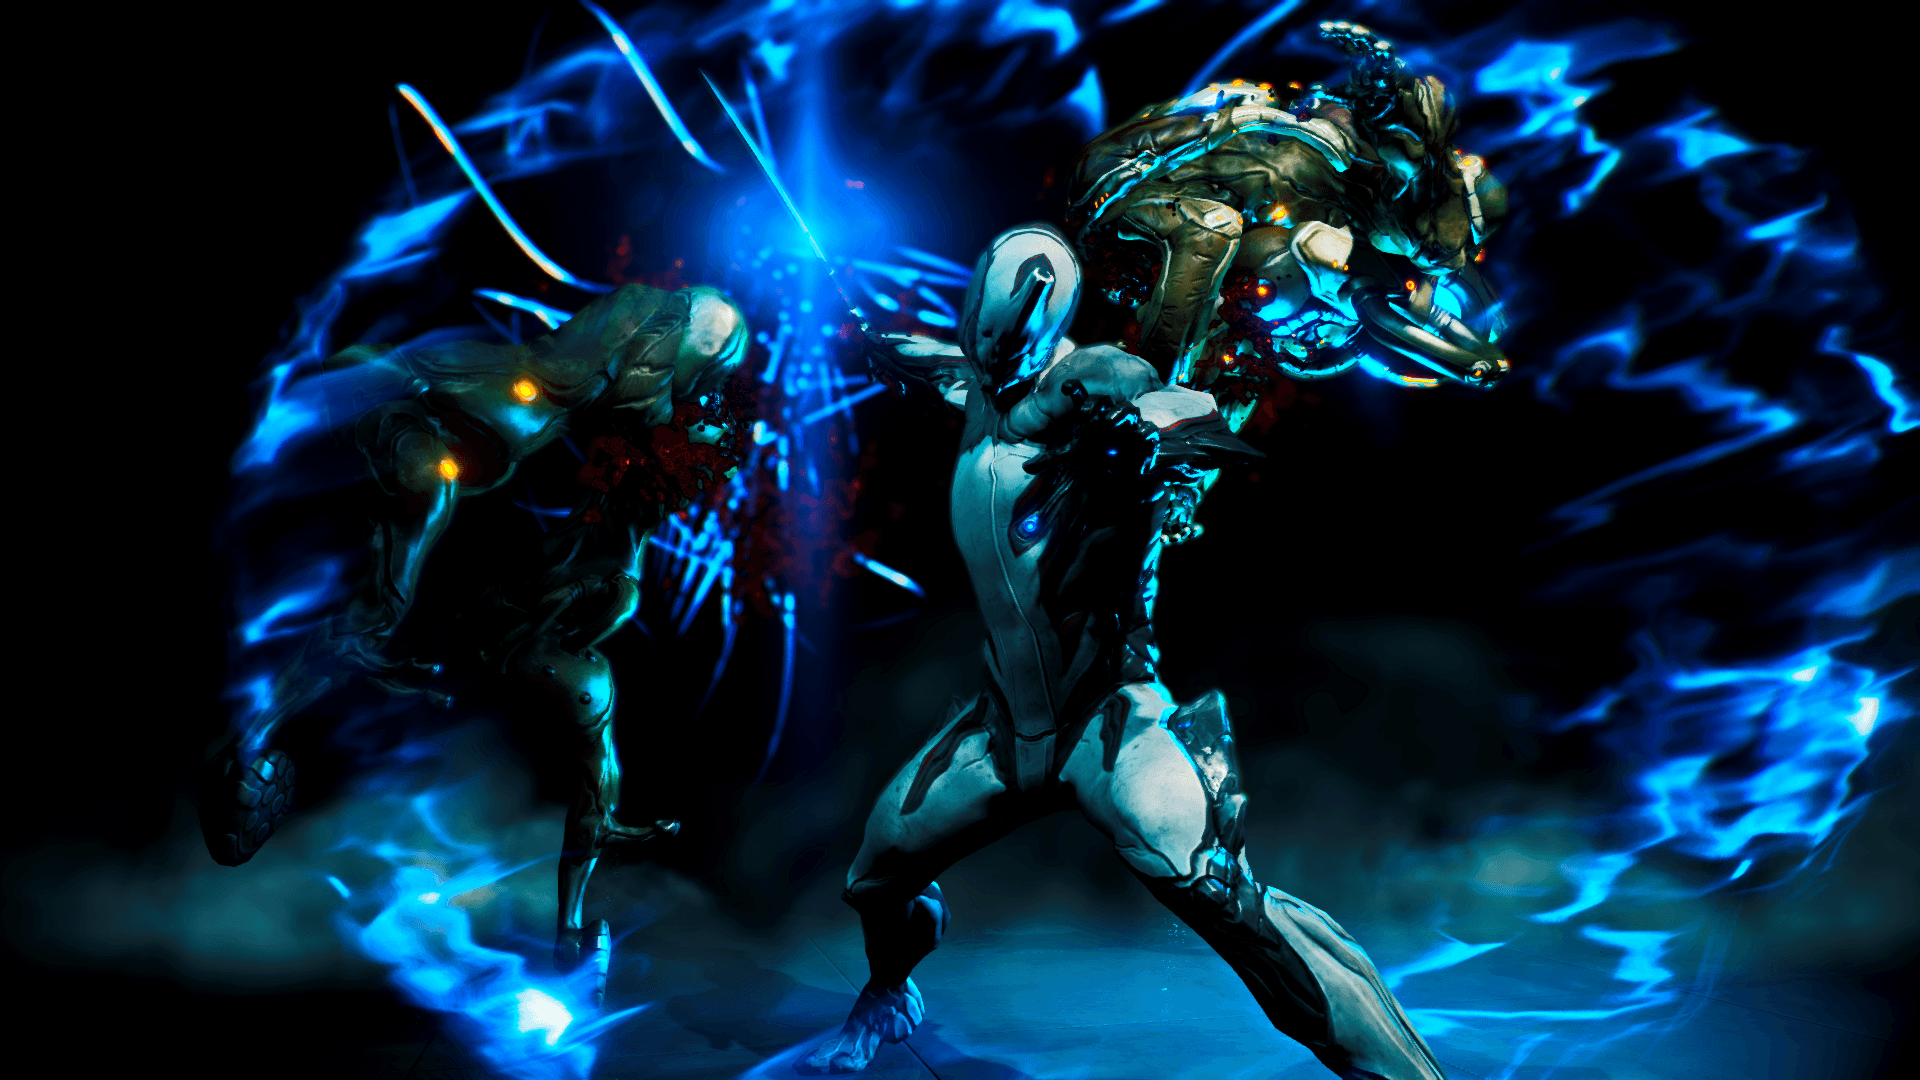 Ash Warframe Wallpapers - Top Free Ash Warframe Backgrounds